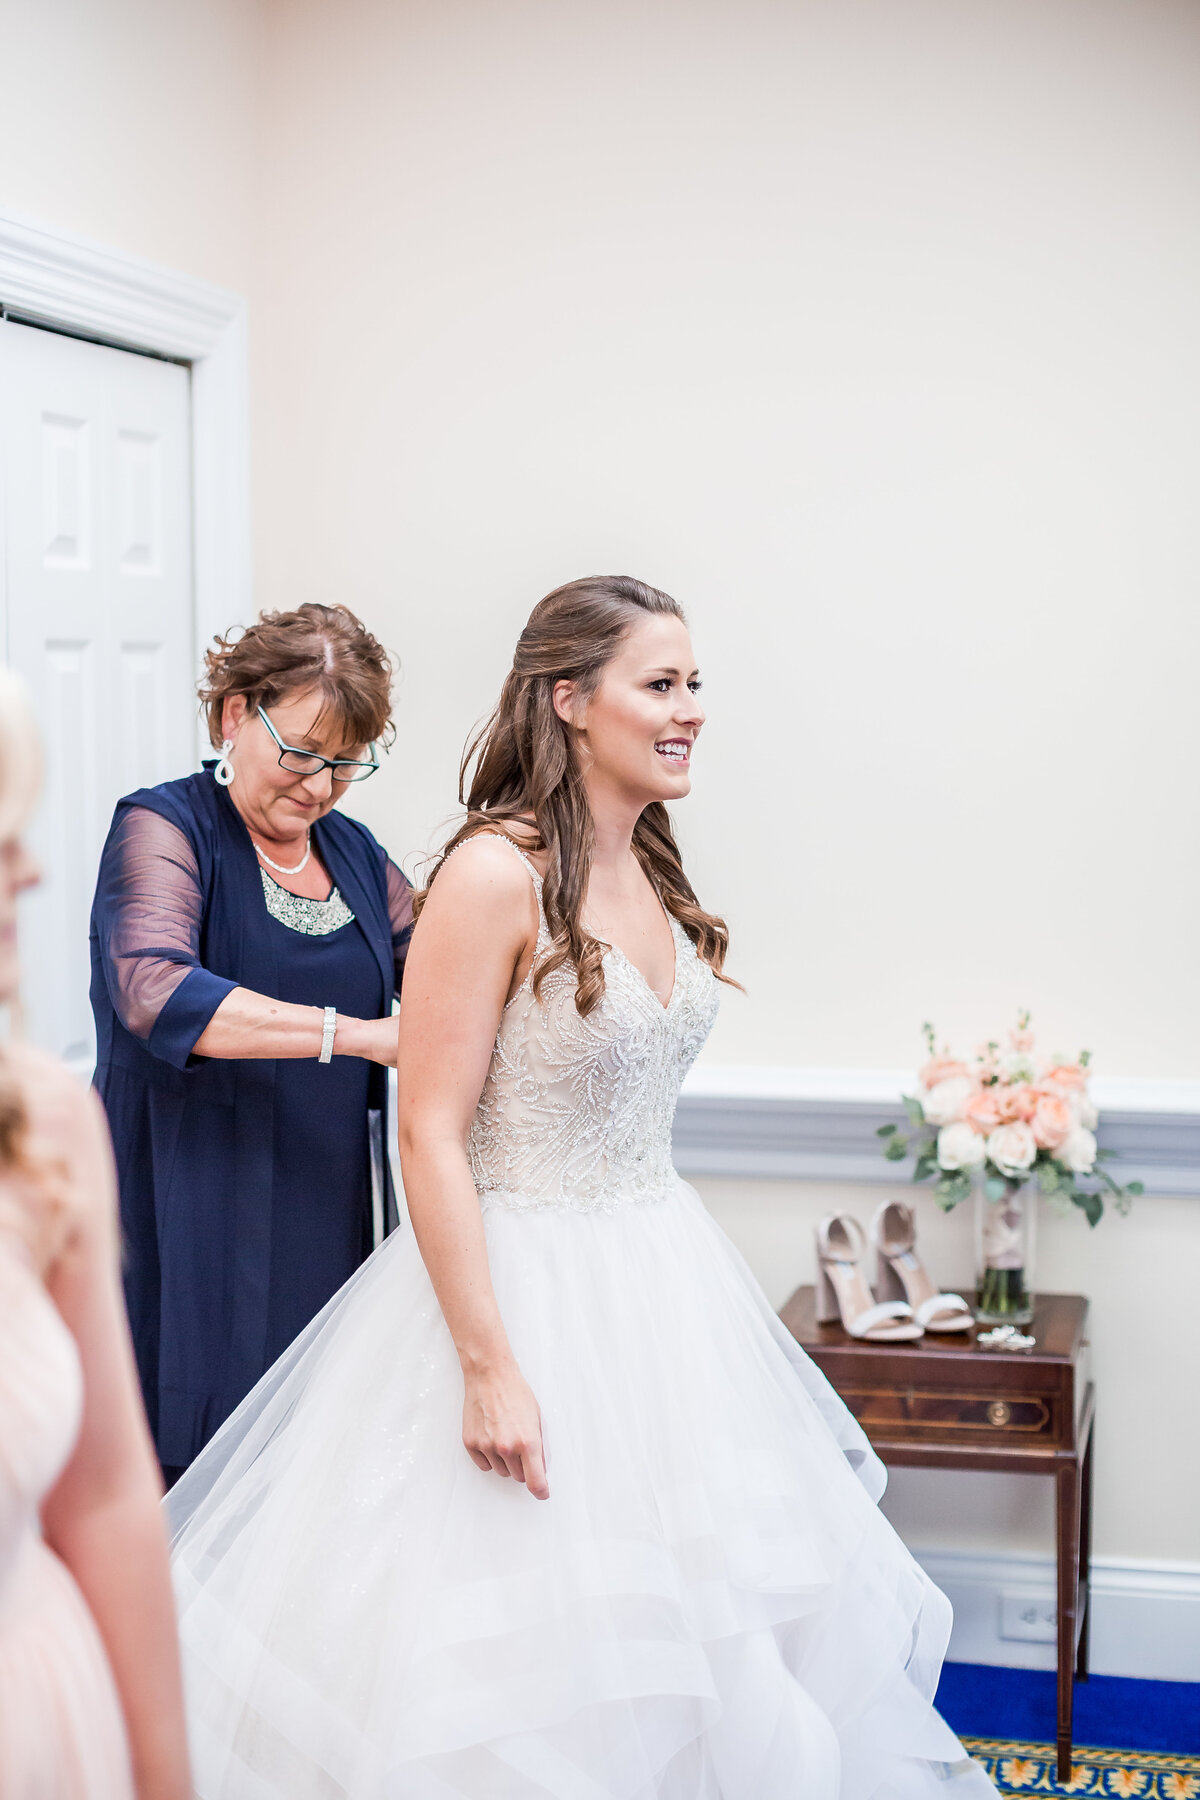 meghan lupyan hampton roads wedding photographer86